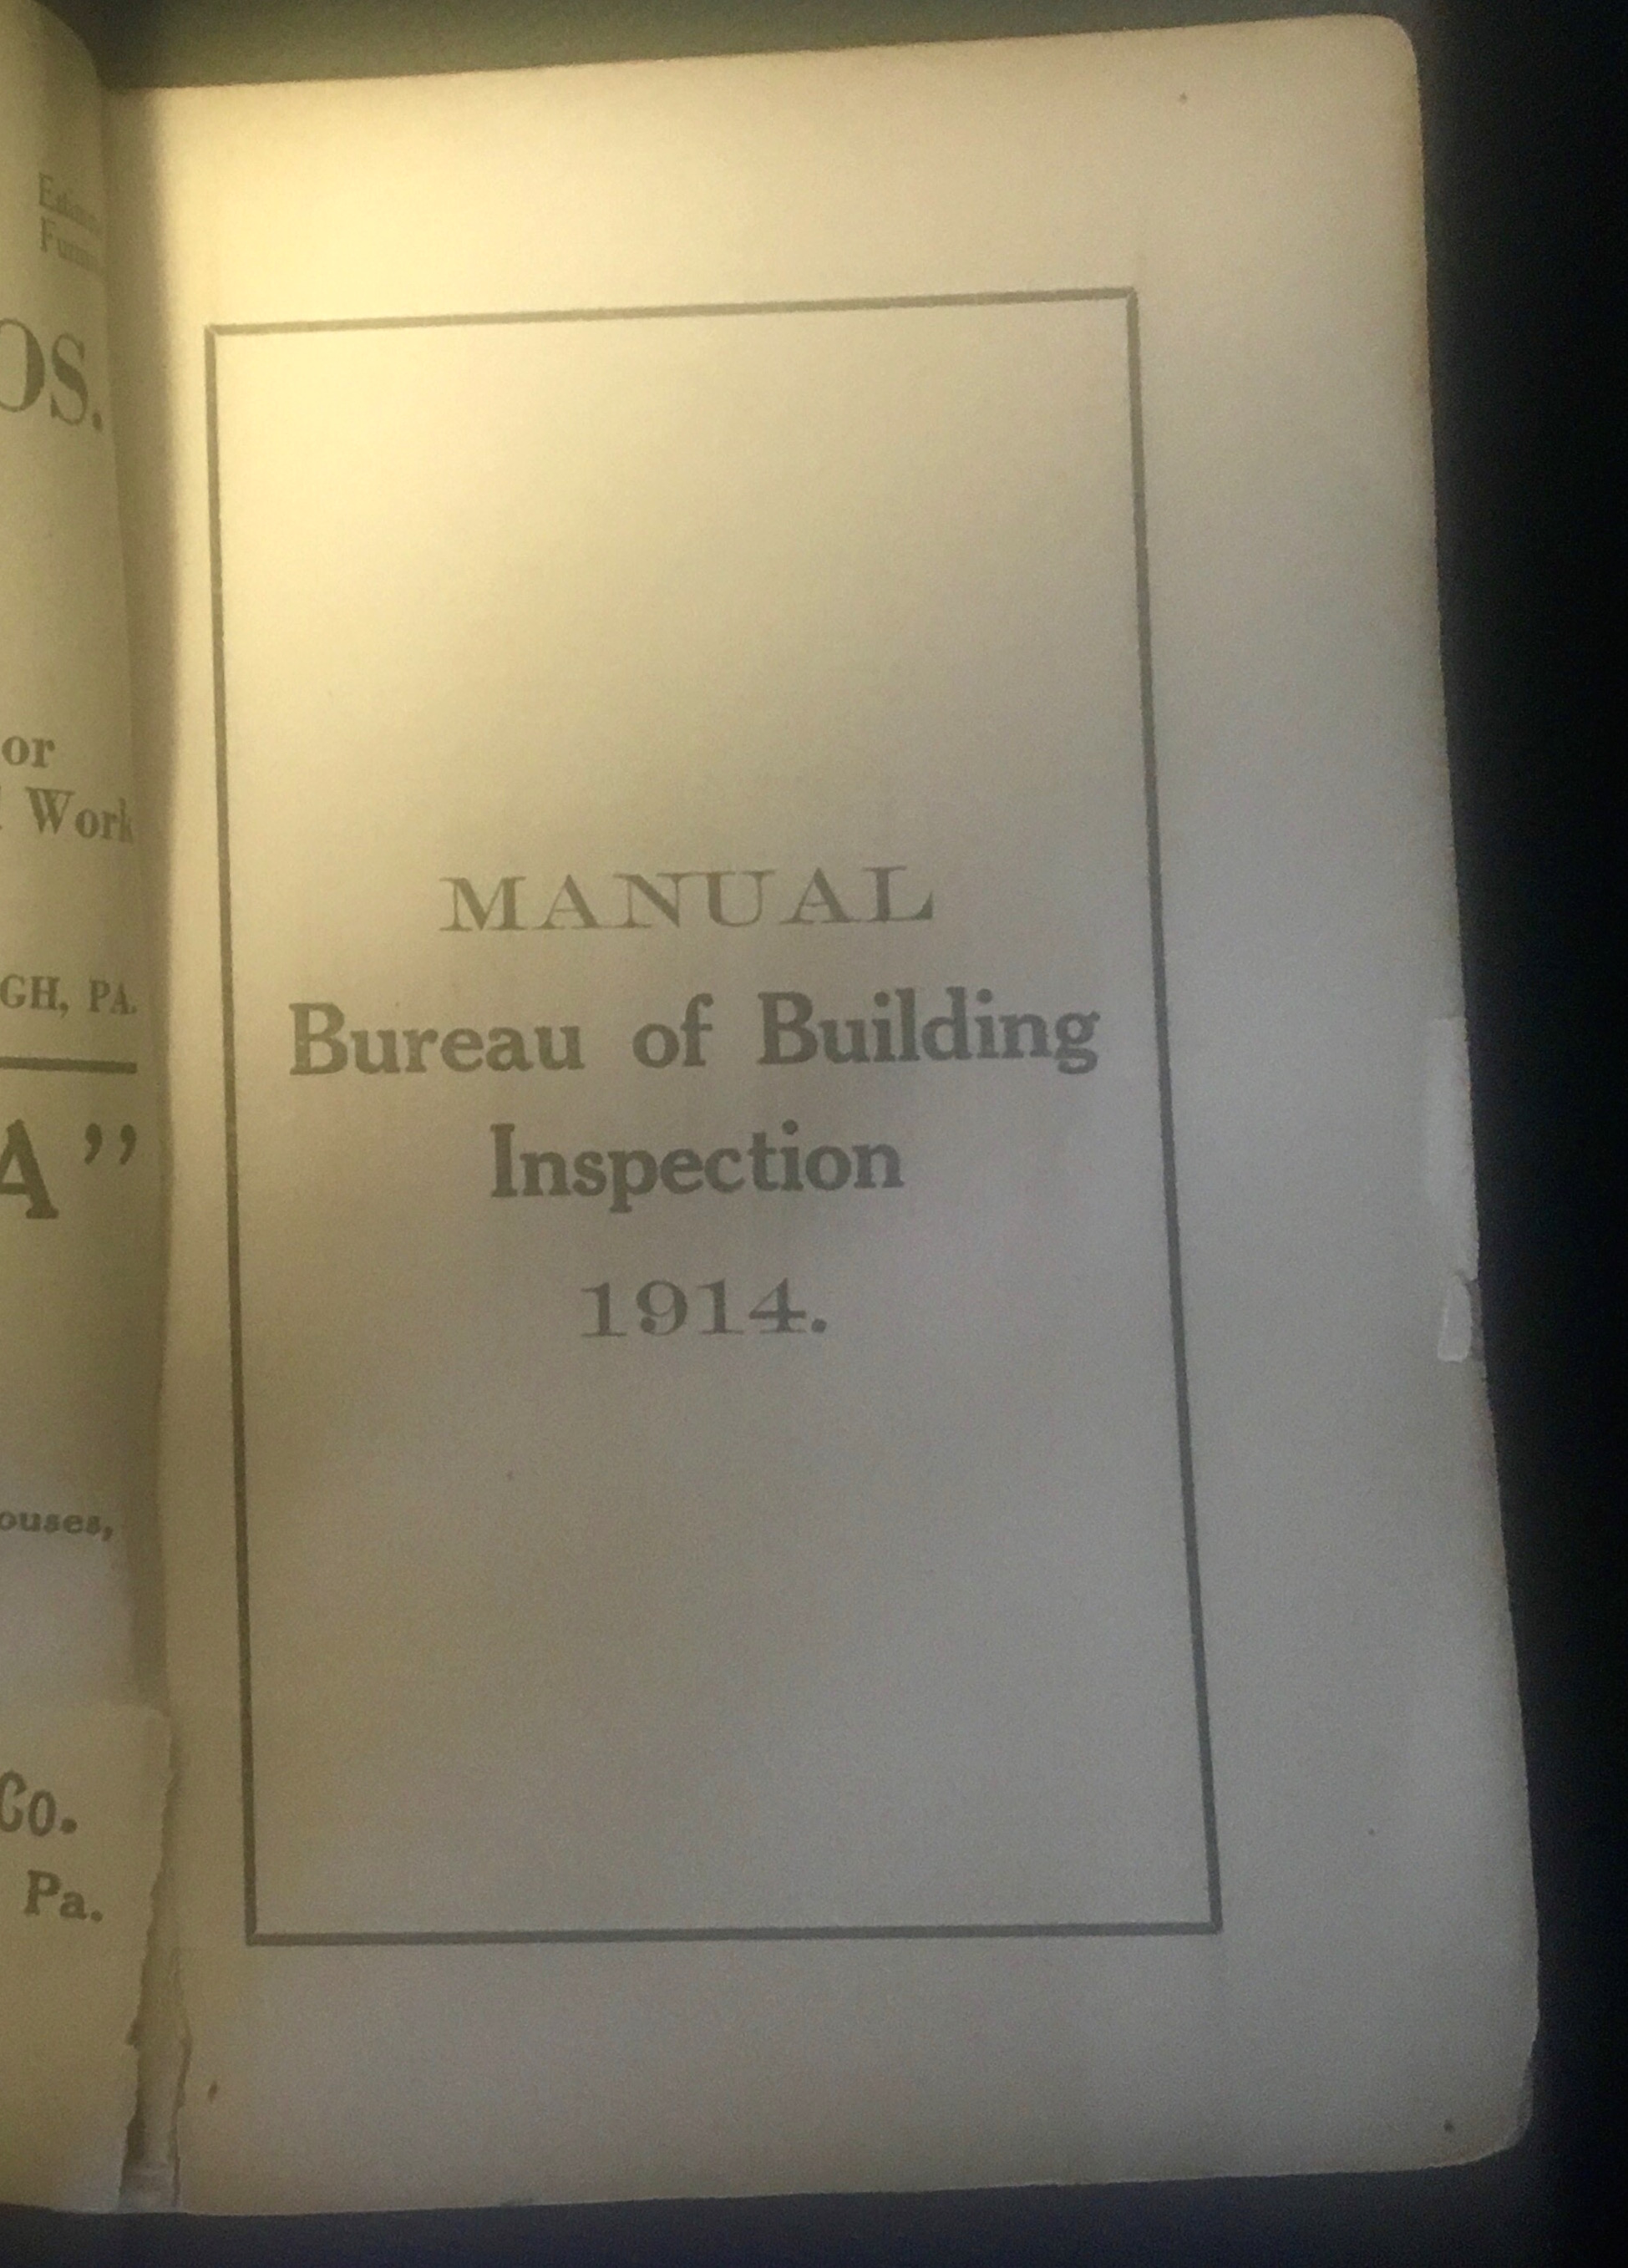 Inspection document.